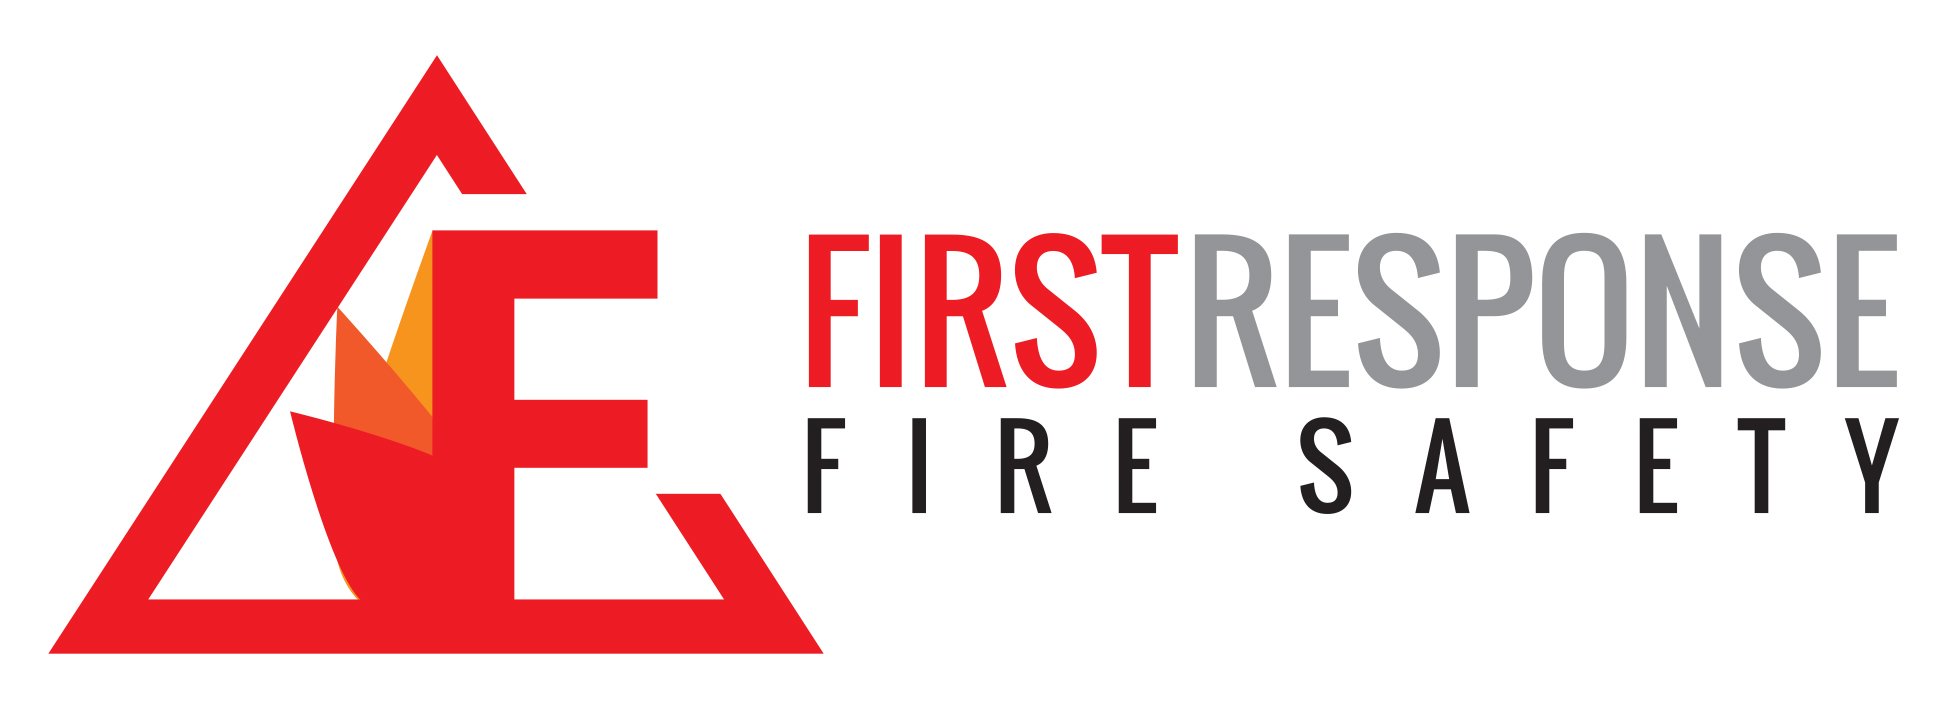 First Response Fire Safety